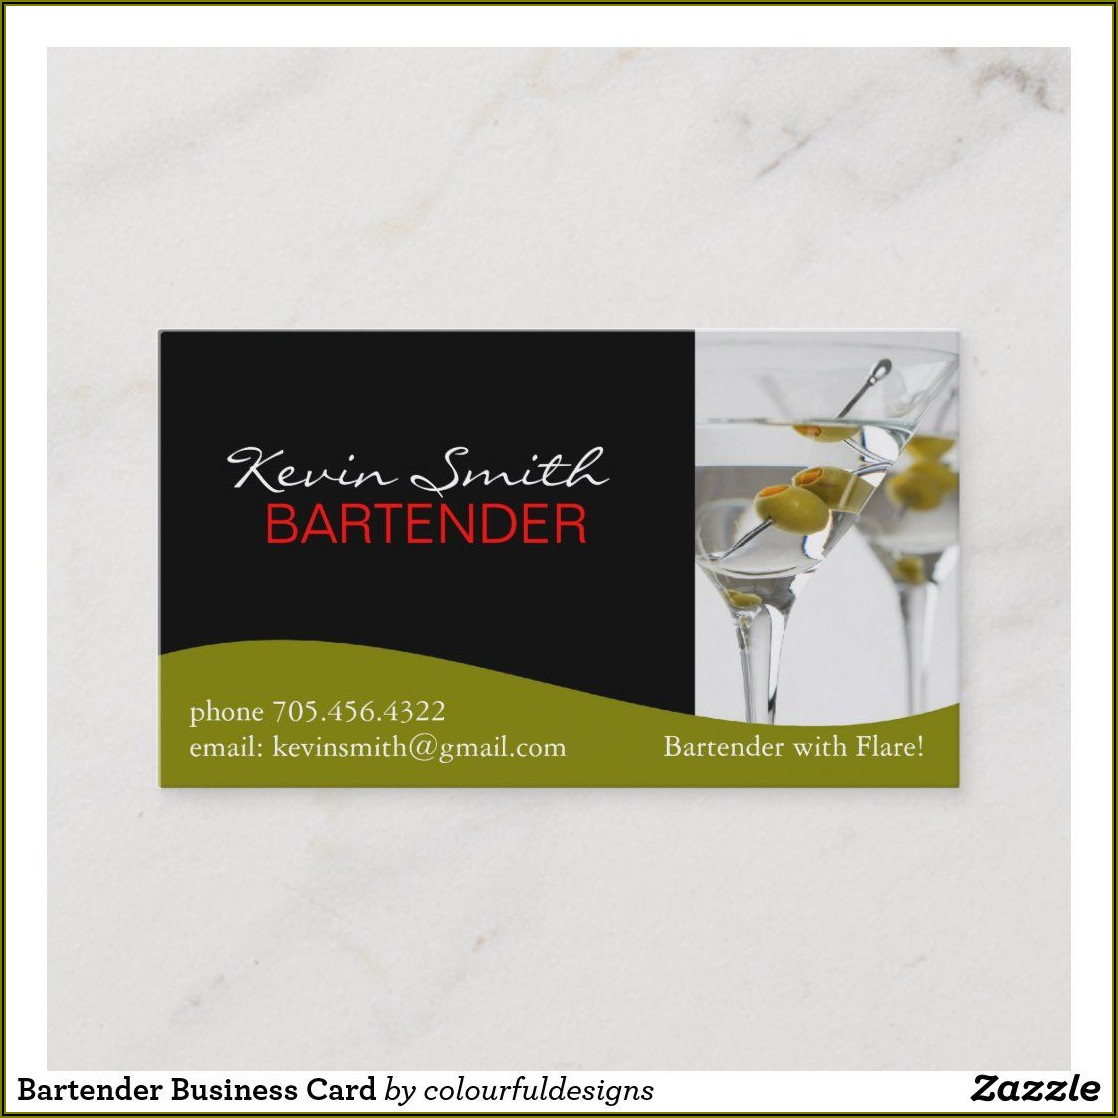 Bartender Business Card Examples